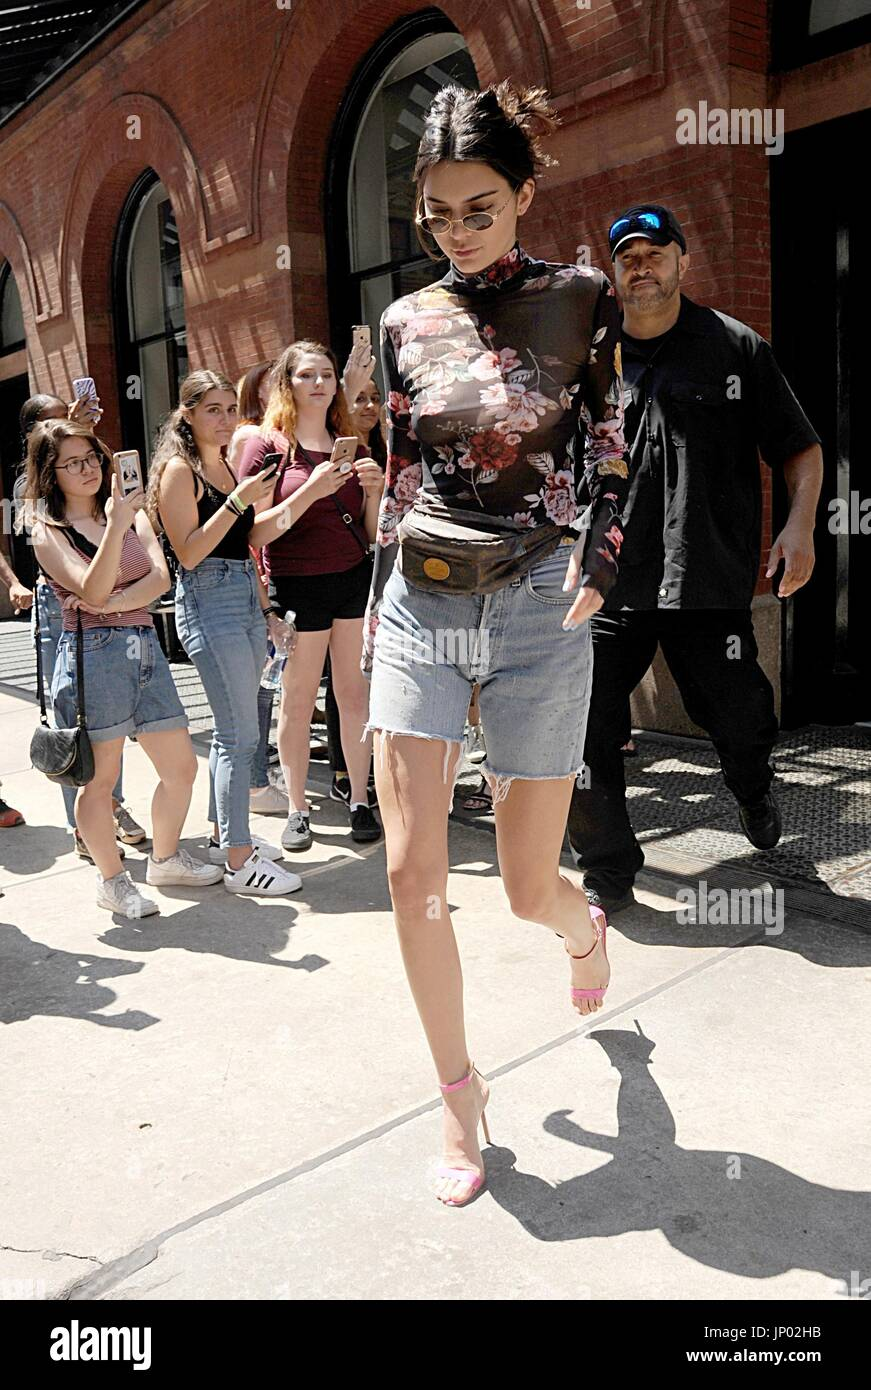 New York, NY, USA. 31st July, 2017. Kendall Jenner out and about for Celebrity Candids - MON, New York, NY July Stock Photo